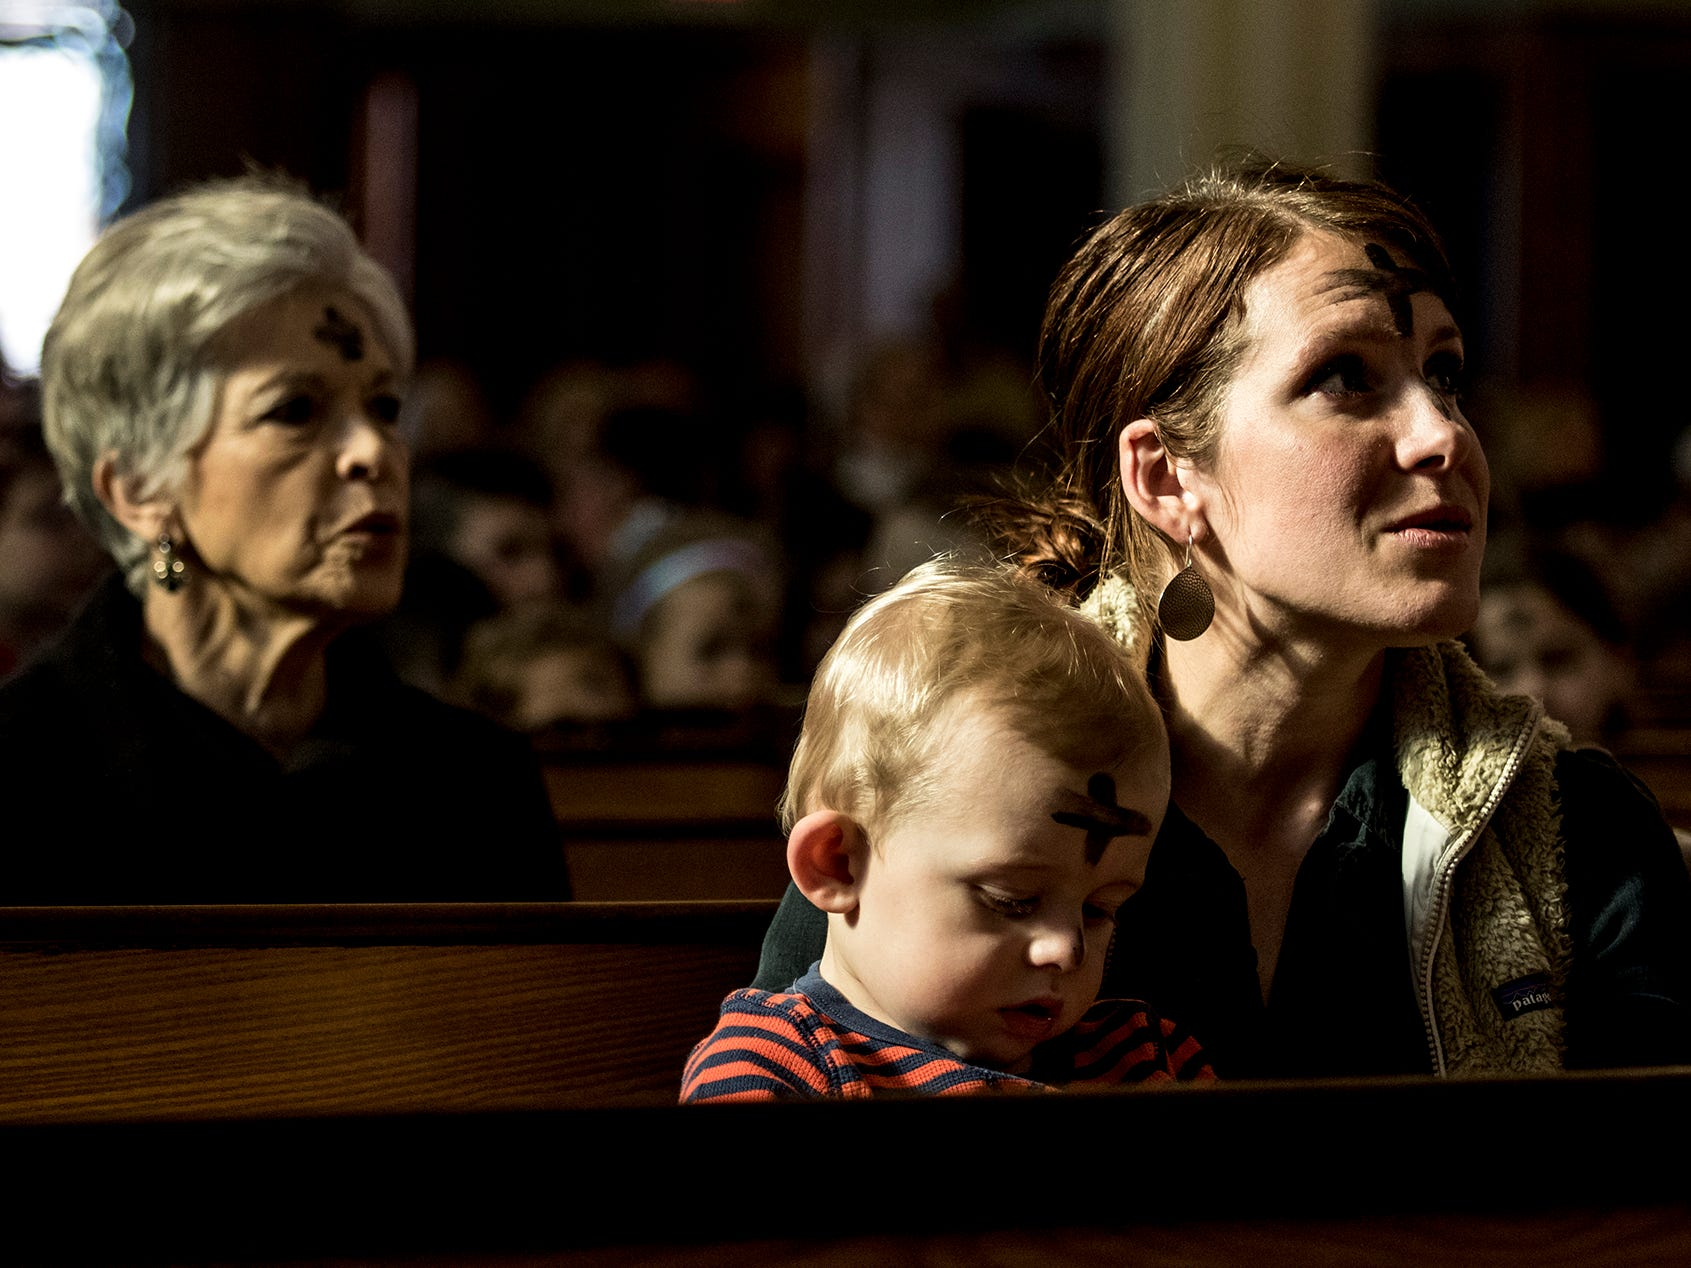 Abigail Rehbeck sings hymns at St, Francis De Sales Church in Newark, with her 2 year old son, Pace, after receiving Ashes for Ash Wednesday. Behind her is Anna Rehl who has been a member of the church for the past 10 years.